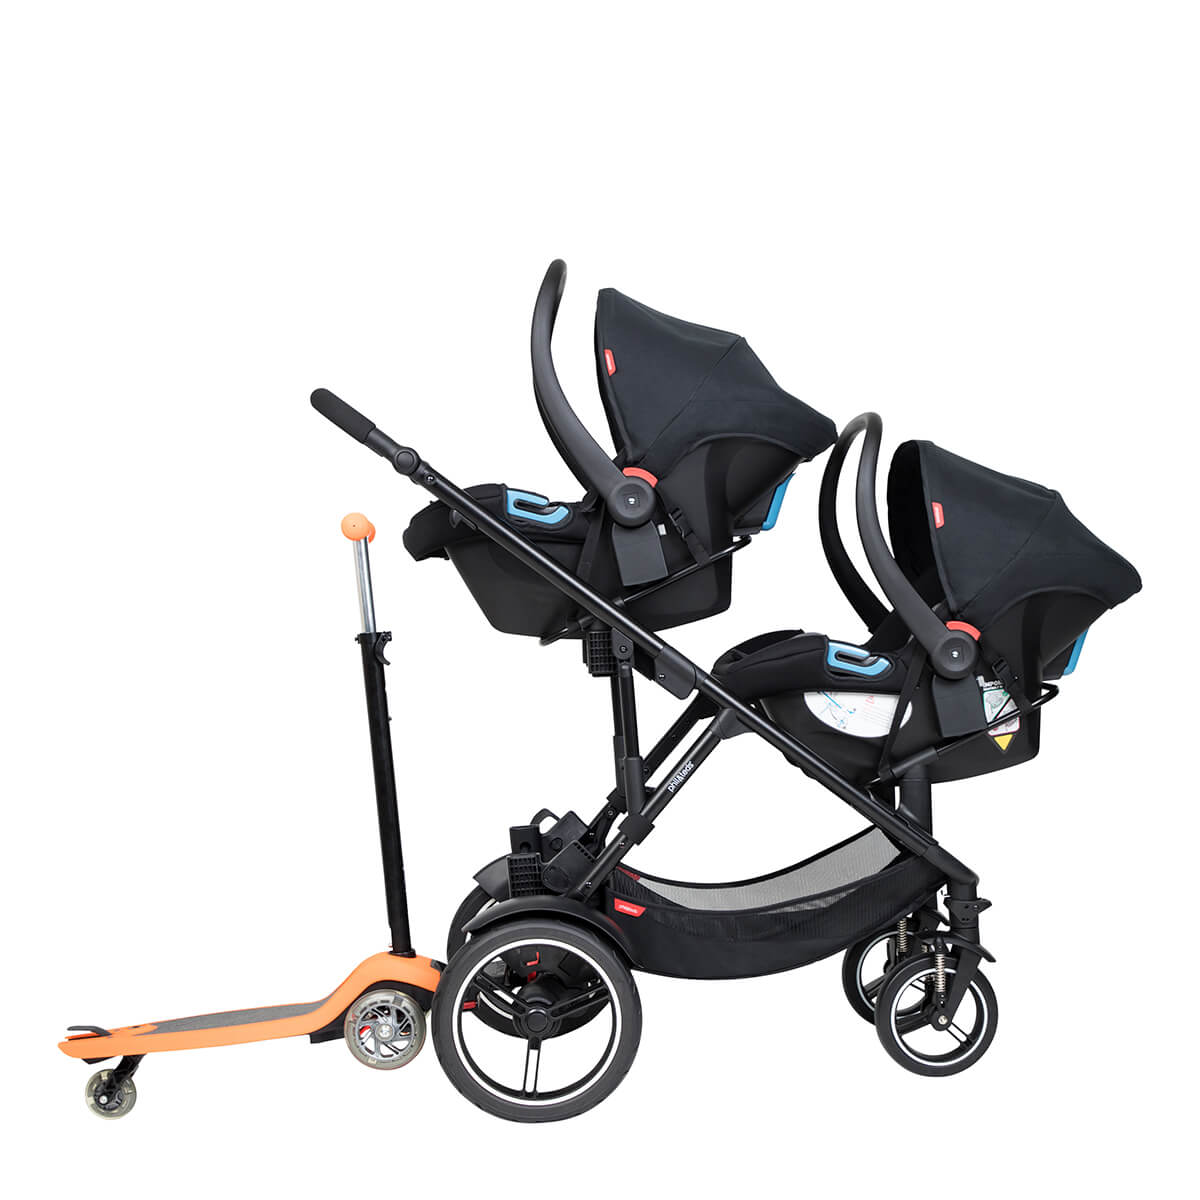 https://cdn.accentuate.io/4509528916056/19272835367000/philteds-voyager-buggy-with-double-travel-systems-and-freerider-stroller-board-in-the-rear-v1626484607077.jpg?1200x1200